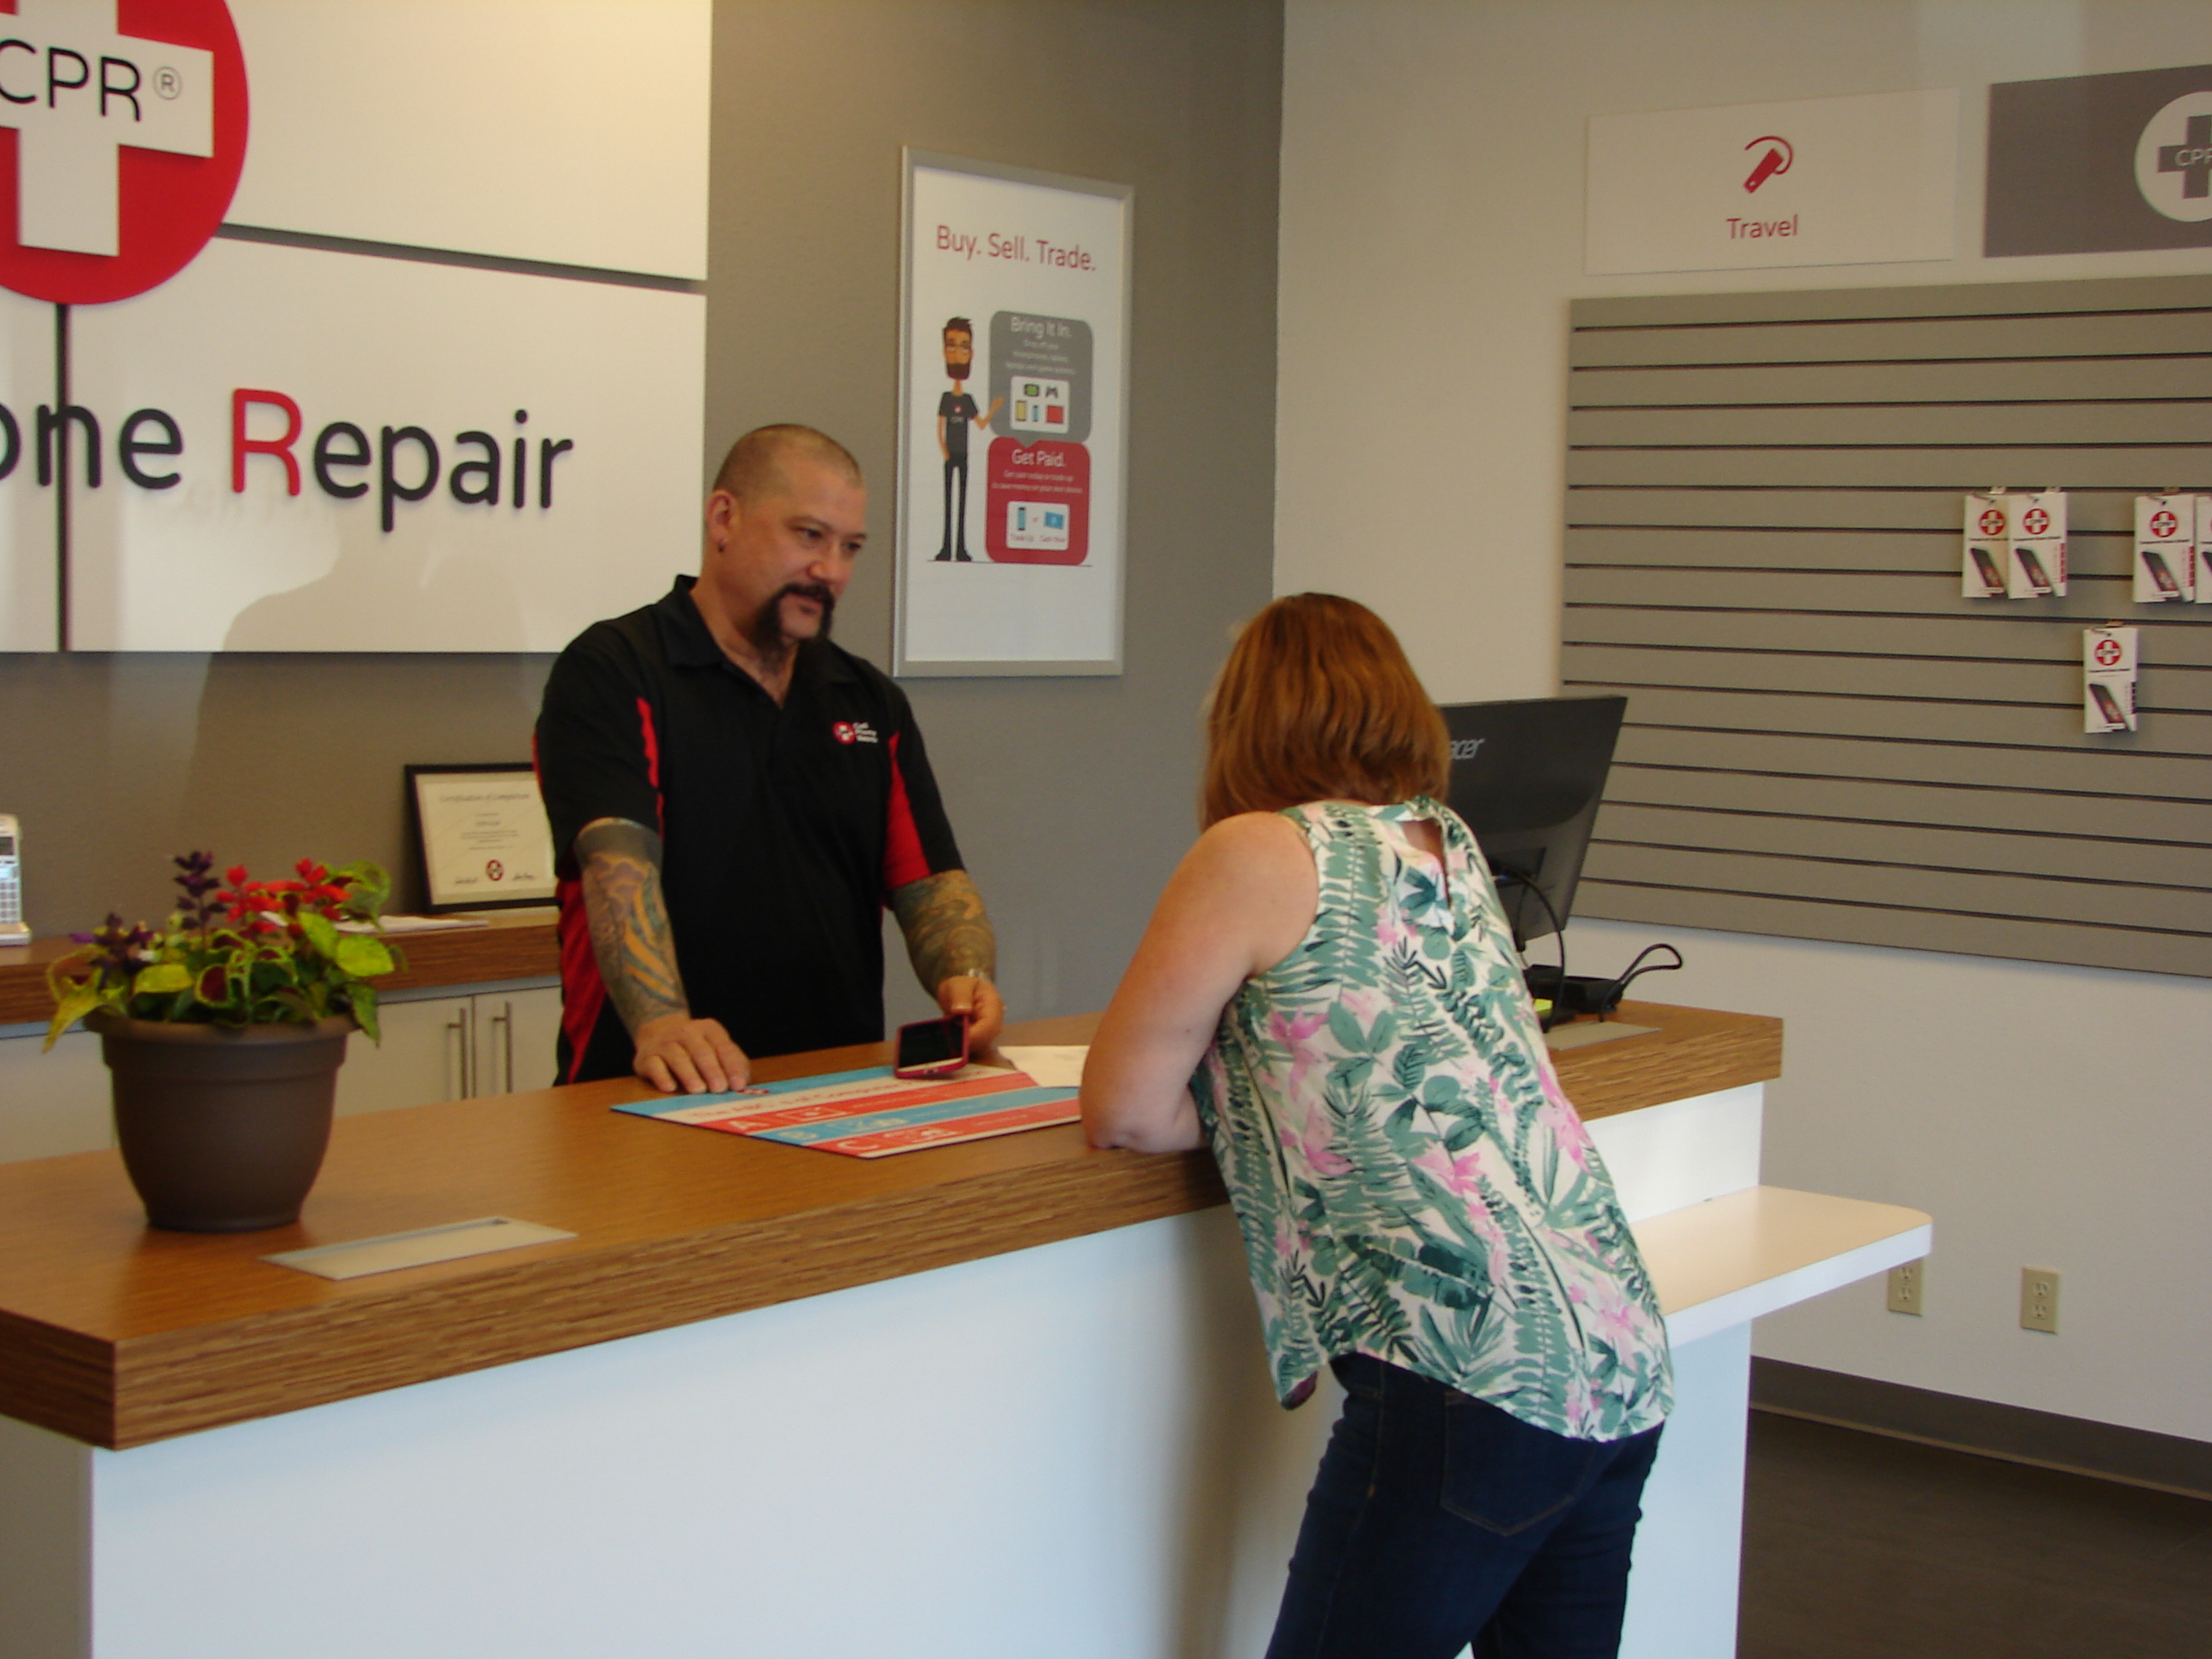 CPR Cell Phone Repair Silverdale image 4